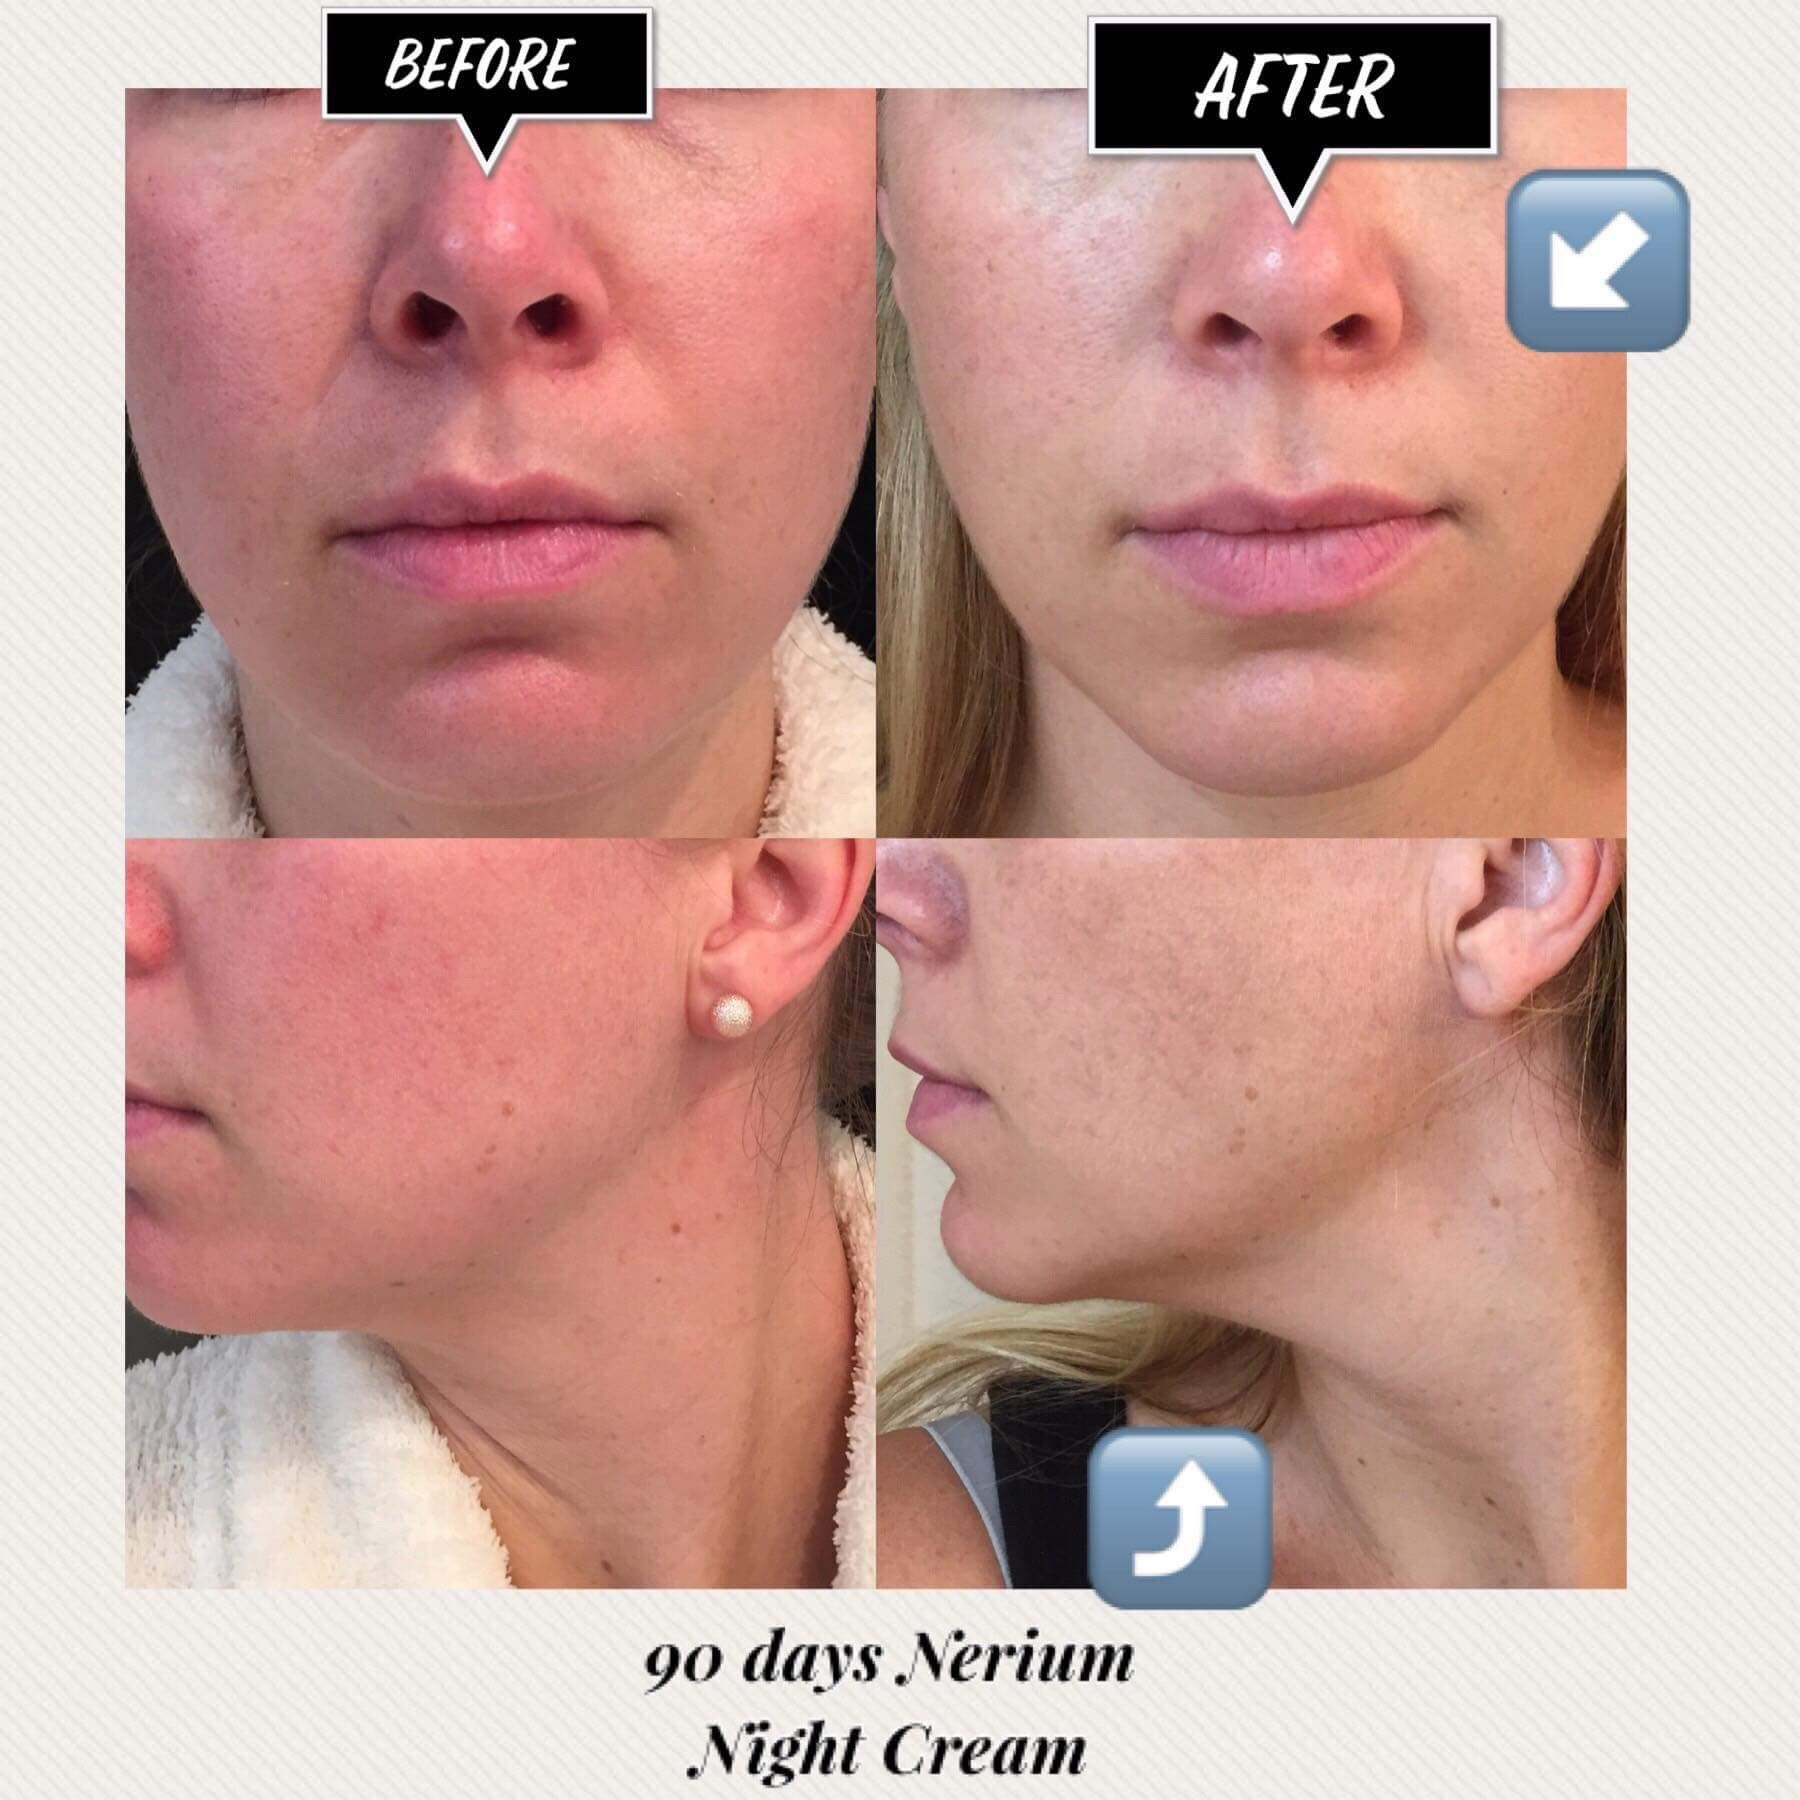 Take The Red Out Of Your Skin Uneven Tone Blotchy Appearance Uneven Texture Time To Give Nerium A 90 Day Trial Nerium Night Cream Night Creams Skin Care